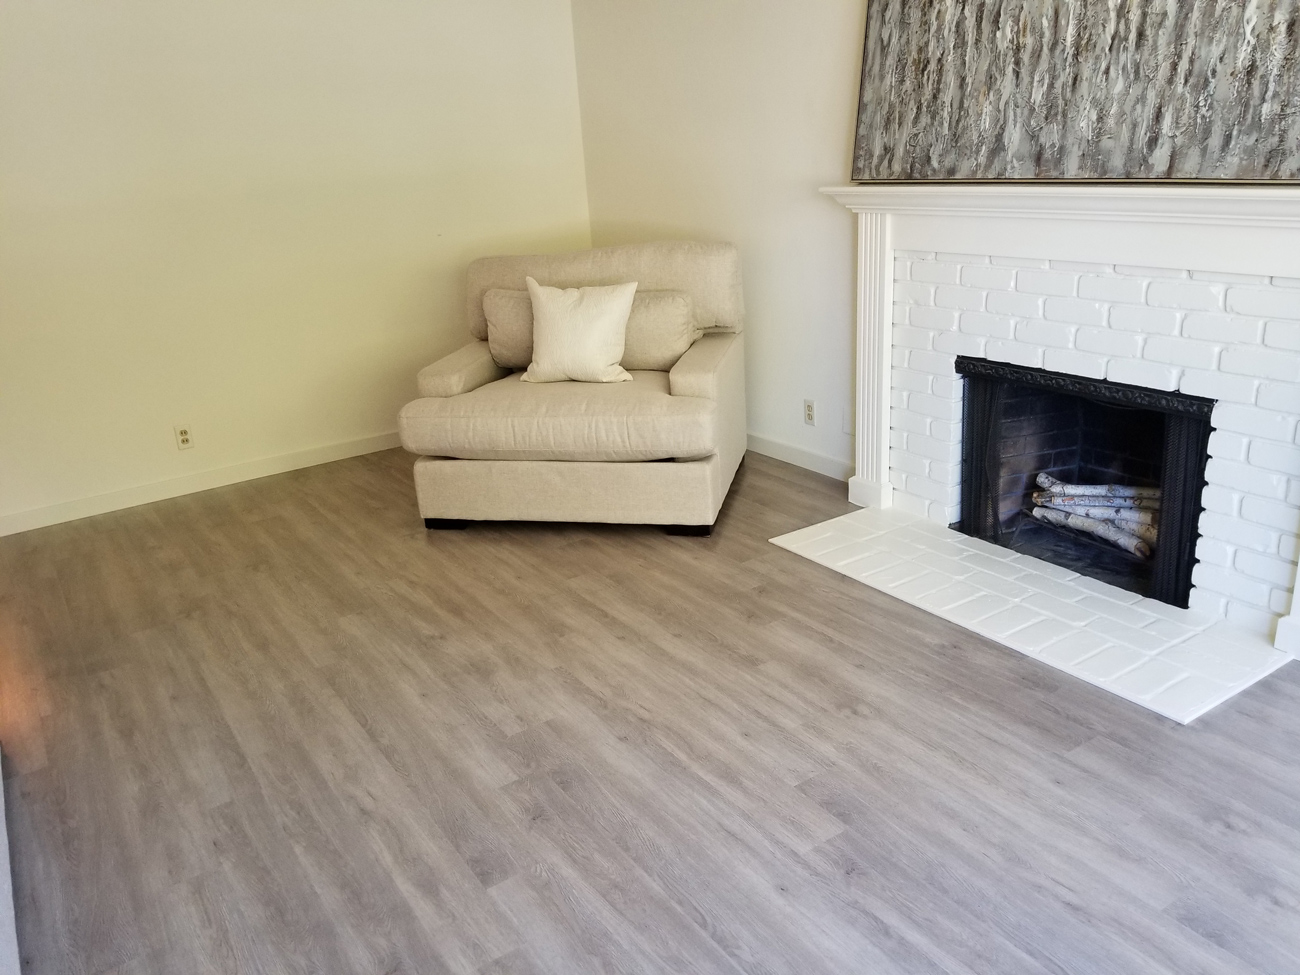 Palo Alto, Flooring Installation: Waterproof, luxury vinyl tile (LVT), 266 square feet. Installed in liviningroom in one day.